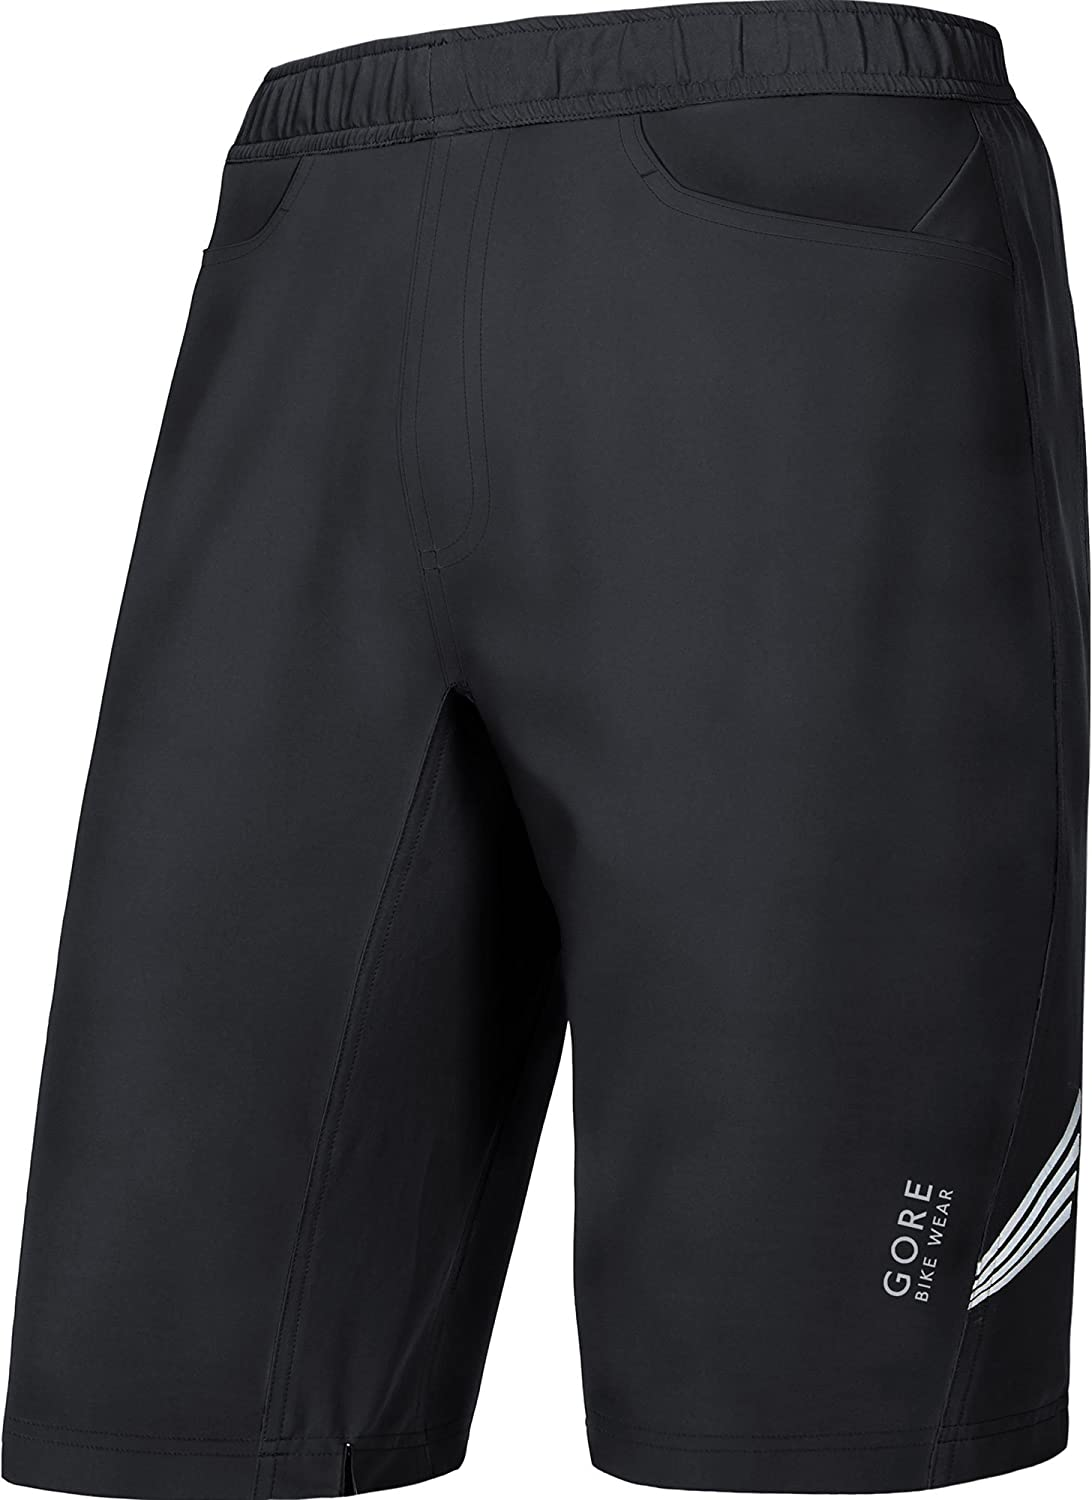 Size L GORE Selected Fabrics TSPELE Integrated inner lining with seat padding 2in 1 Shorts+ Black GORE BIKE WEAR Men/'s 2 in 1 Knee-length Cycling Shorts